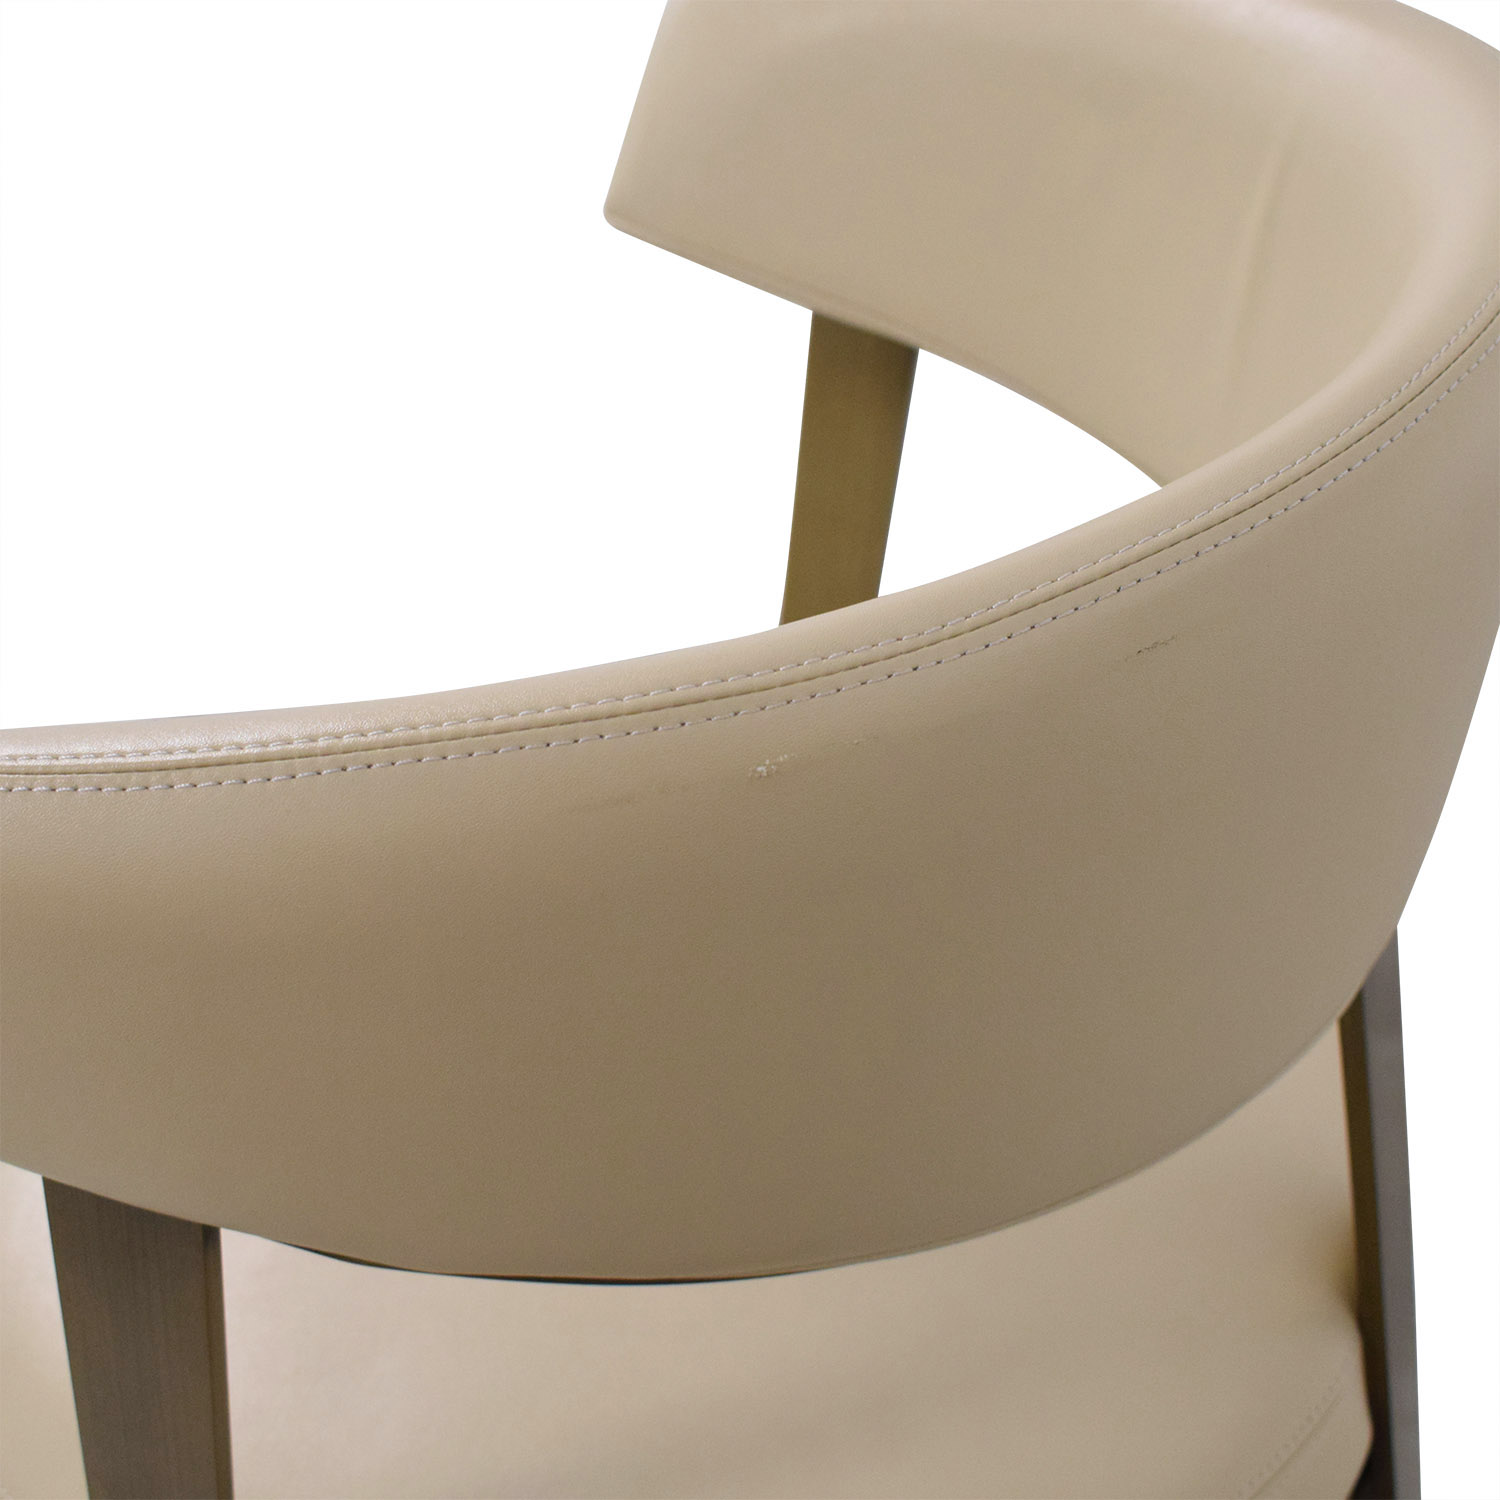 Interlude Home Interlude Home Dining Chairs coupon